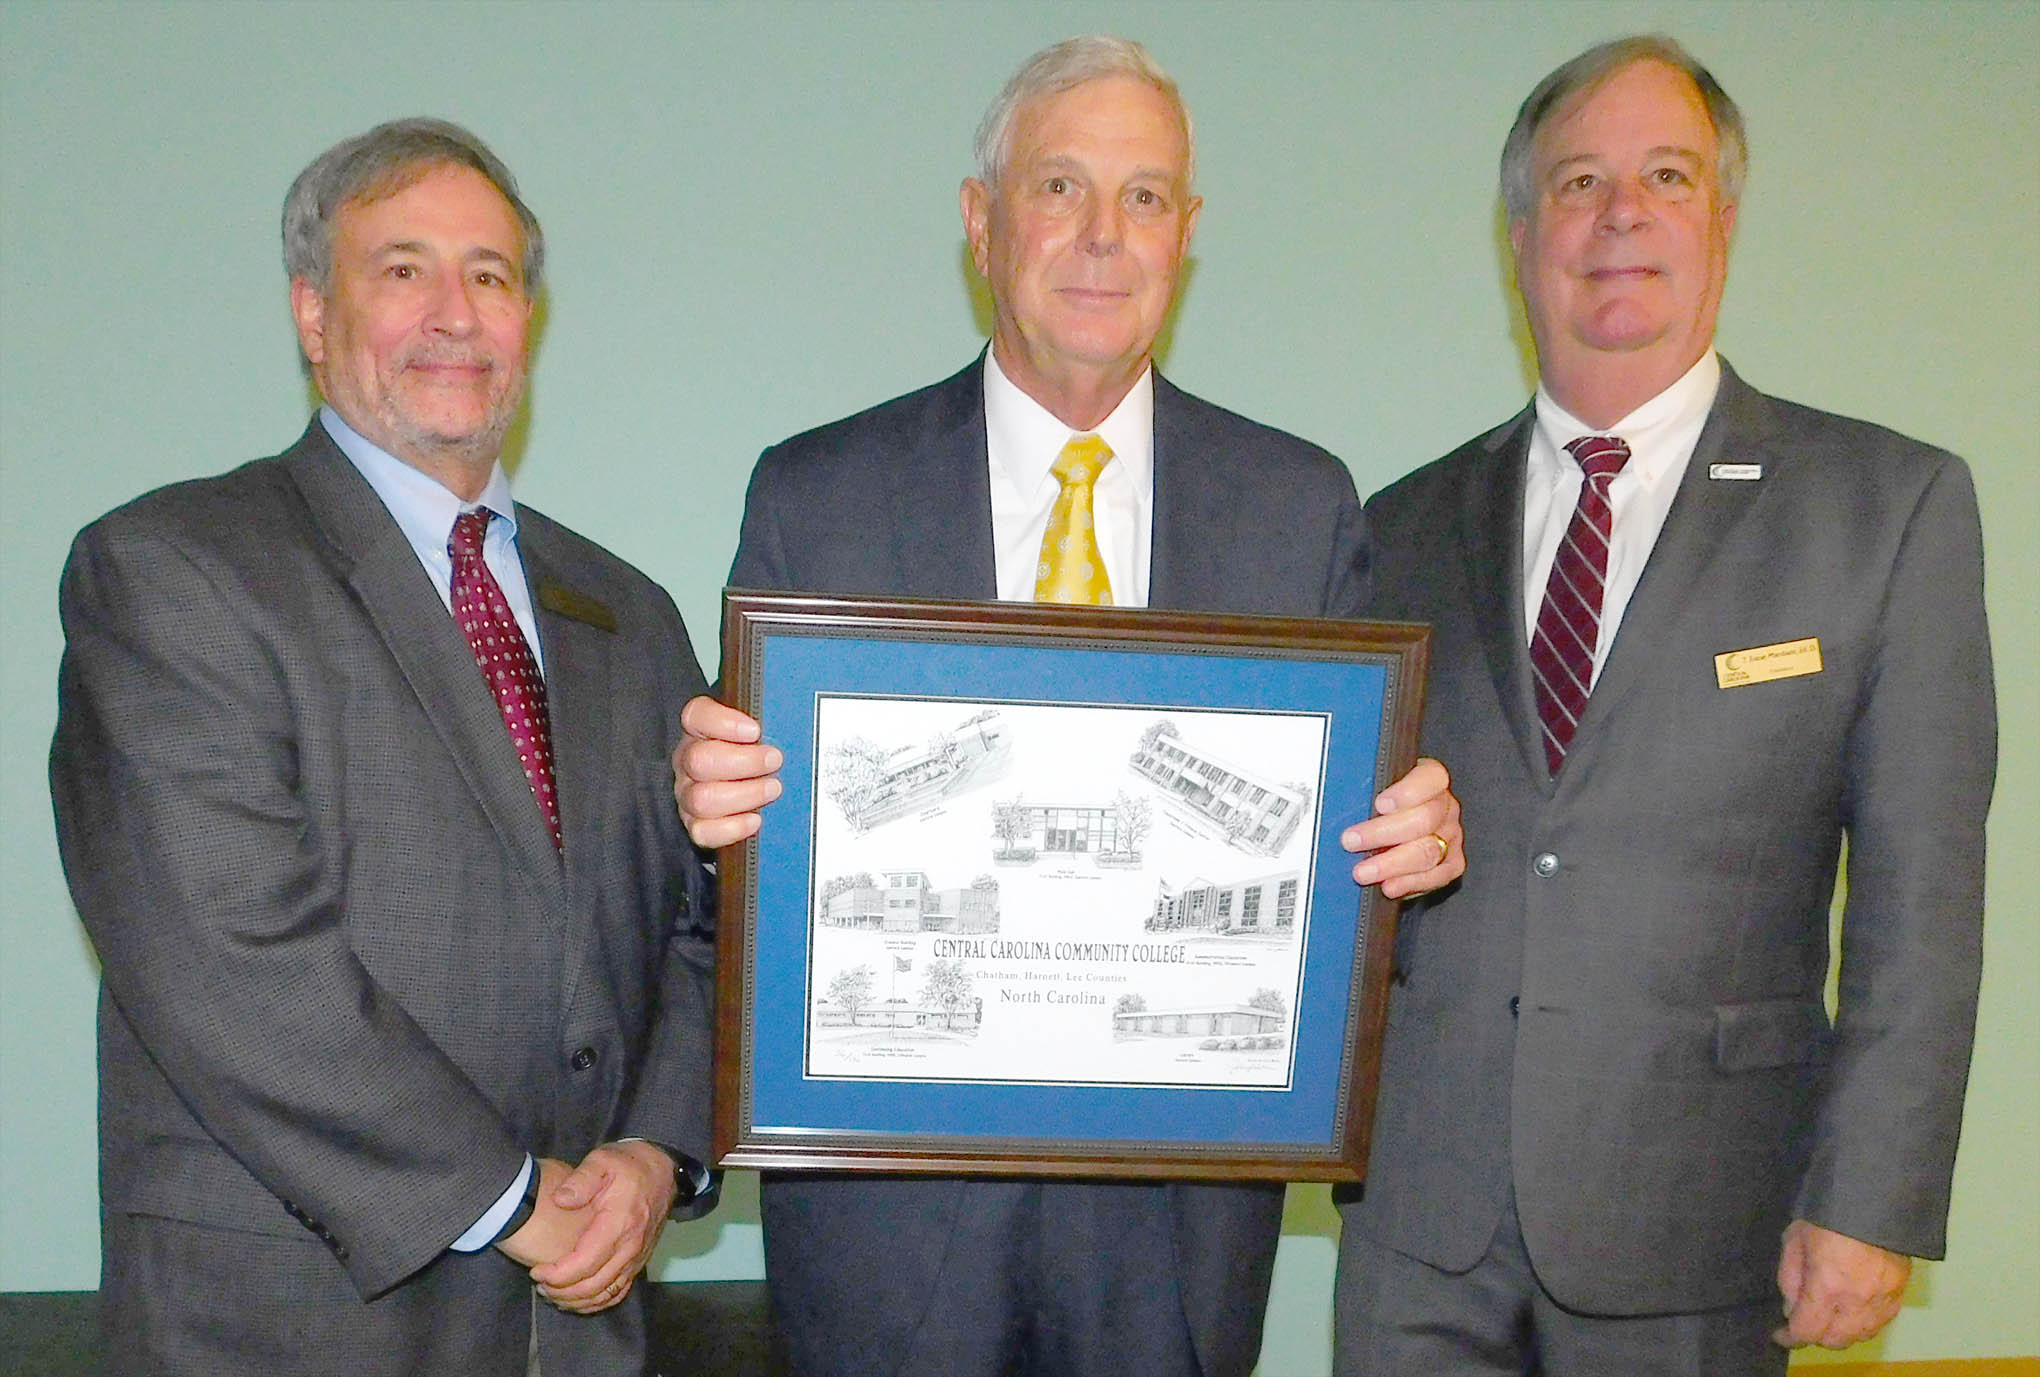 Click to enlarge,  Clem Medley (center), pictured with CCCC Board of Trustees Chairman Julian Philpott (left) and CCCC President T. Eston Marchant (right), was presented with a Jerry Miller print of CCCC buildings, as he was honored for his service as a CCCC Trustee on Wednesday, Nov. 1.